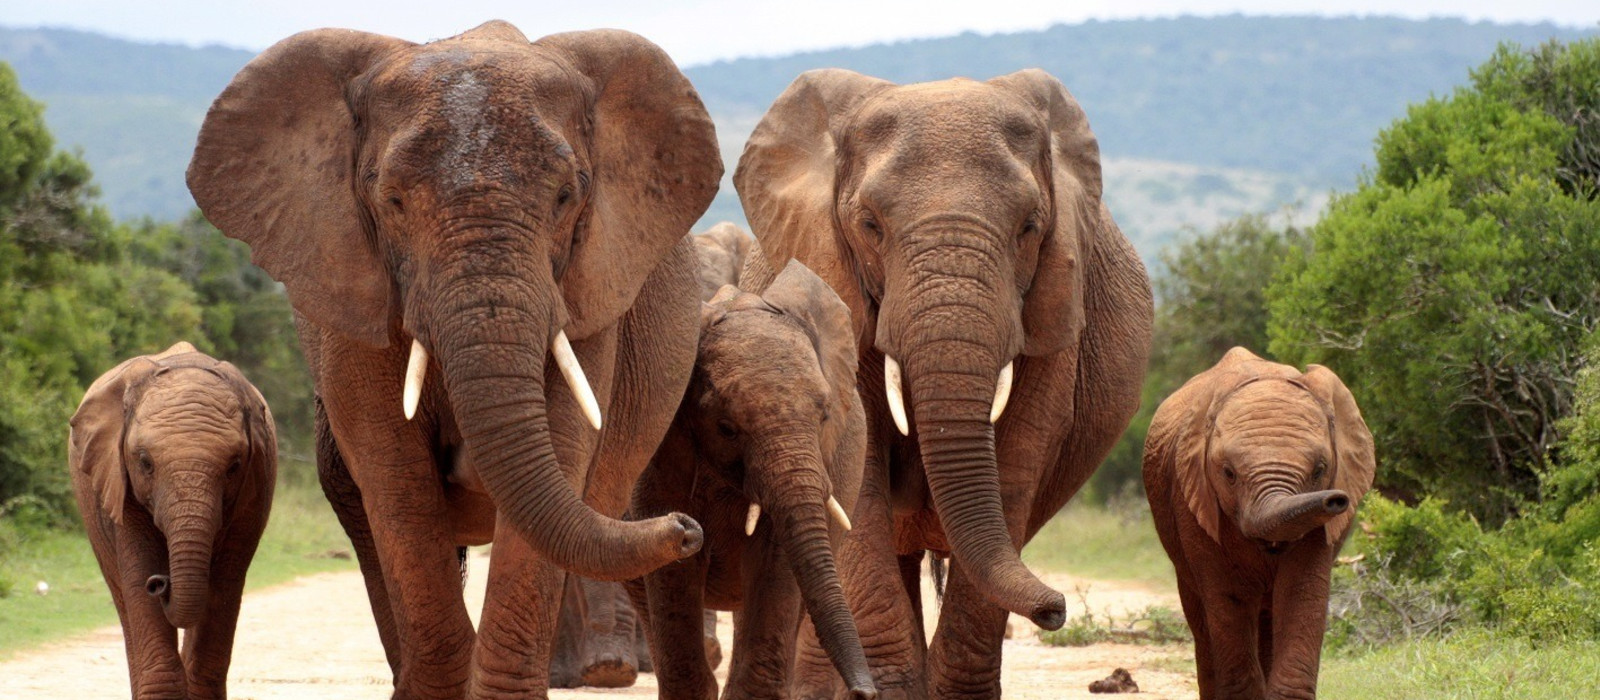 Addo elephant national park,eastern cape,south africa, shutterstock_102111370